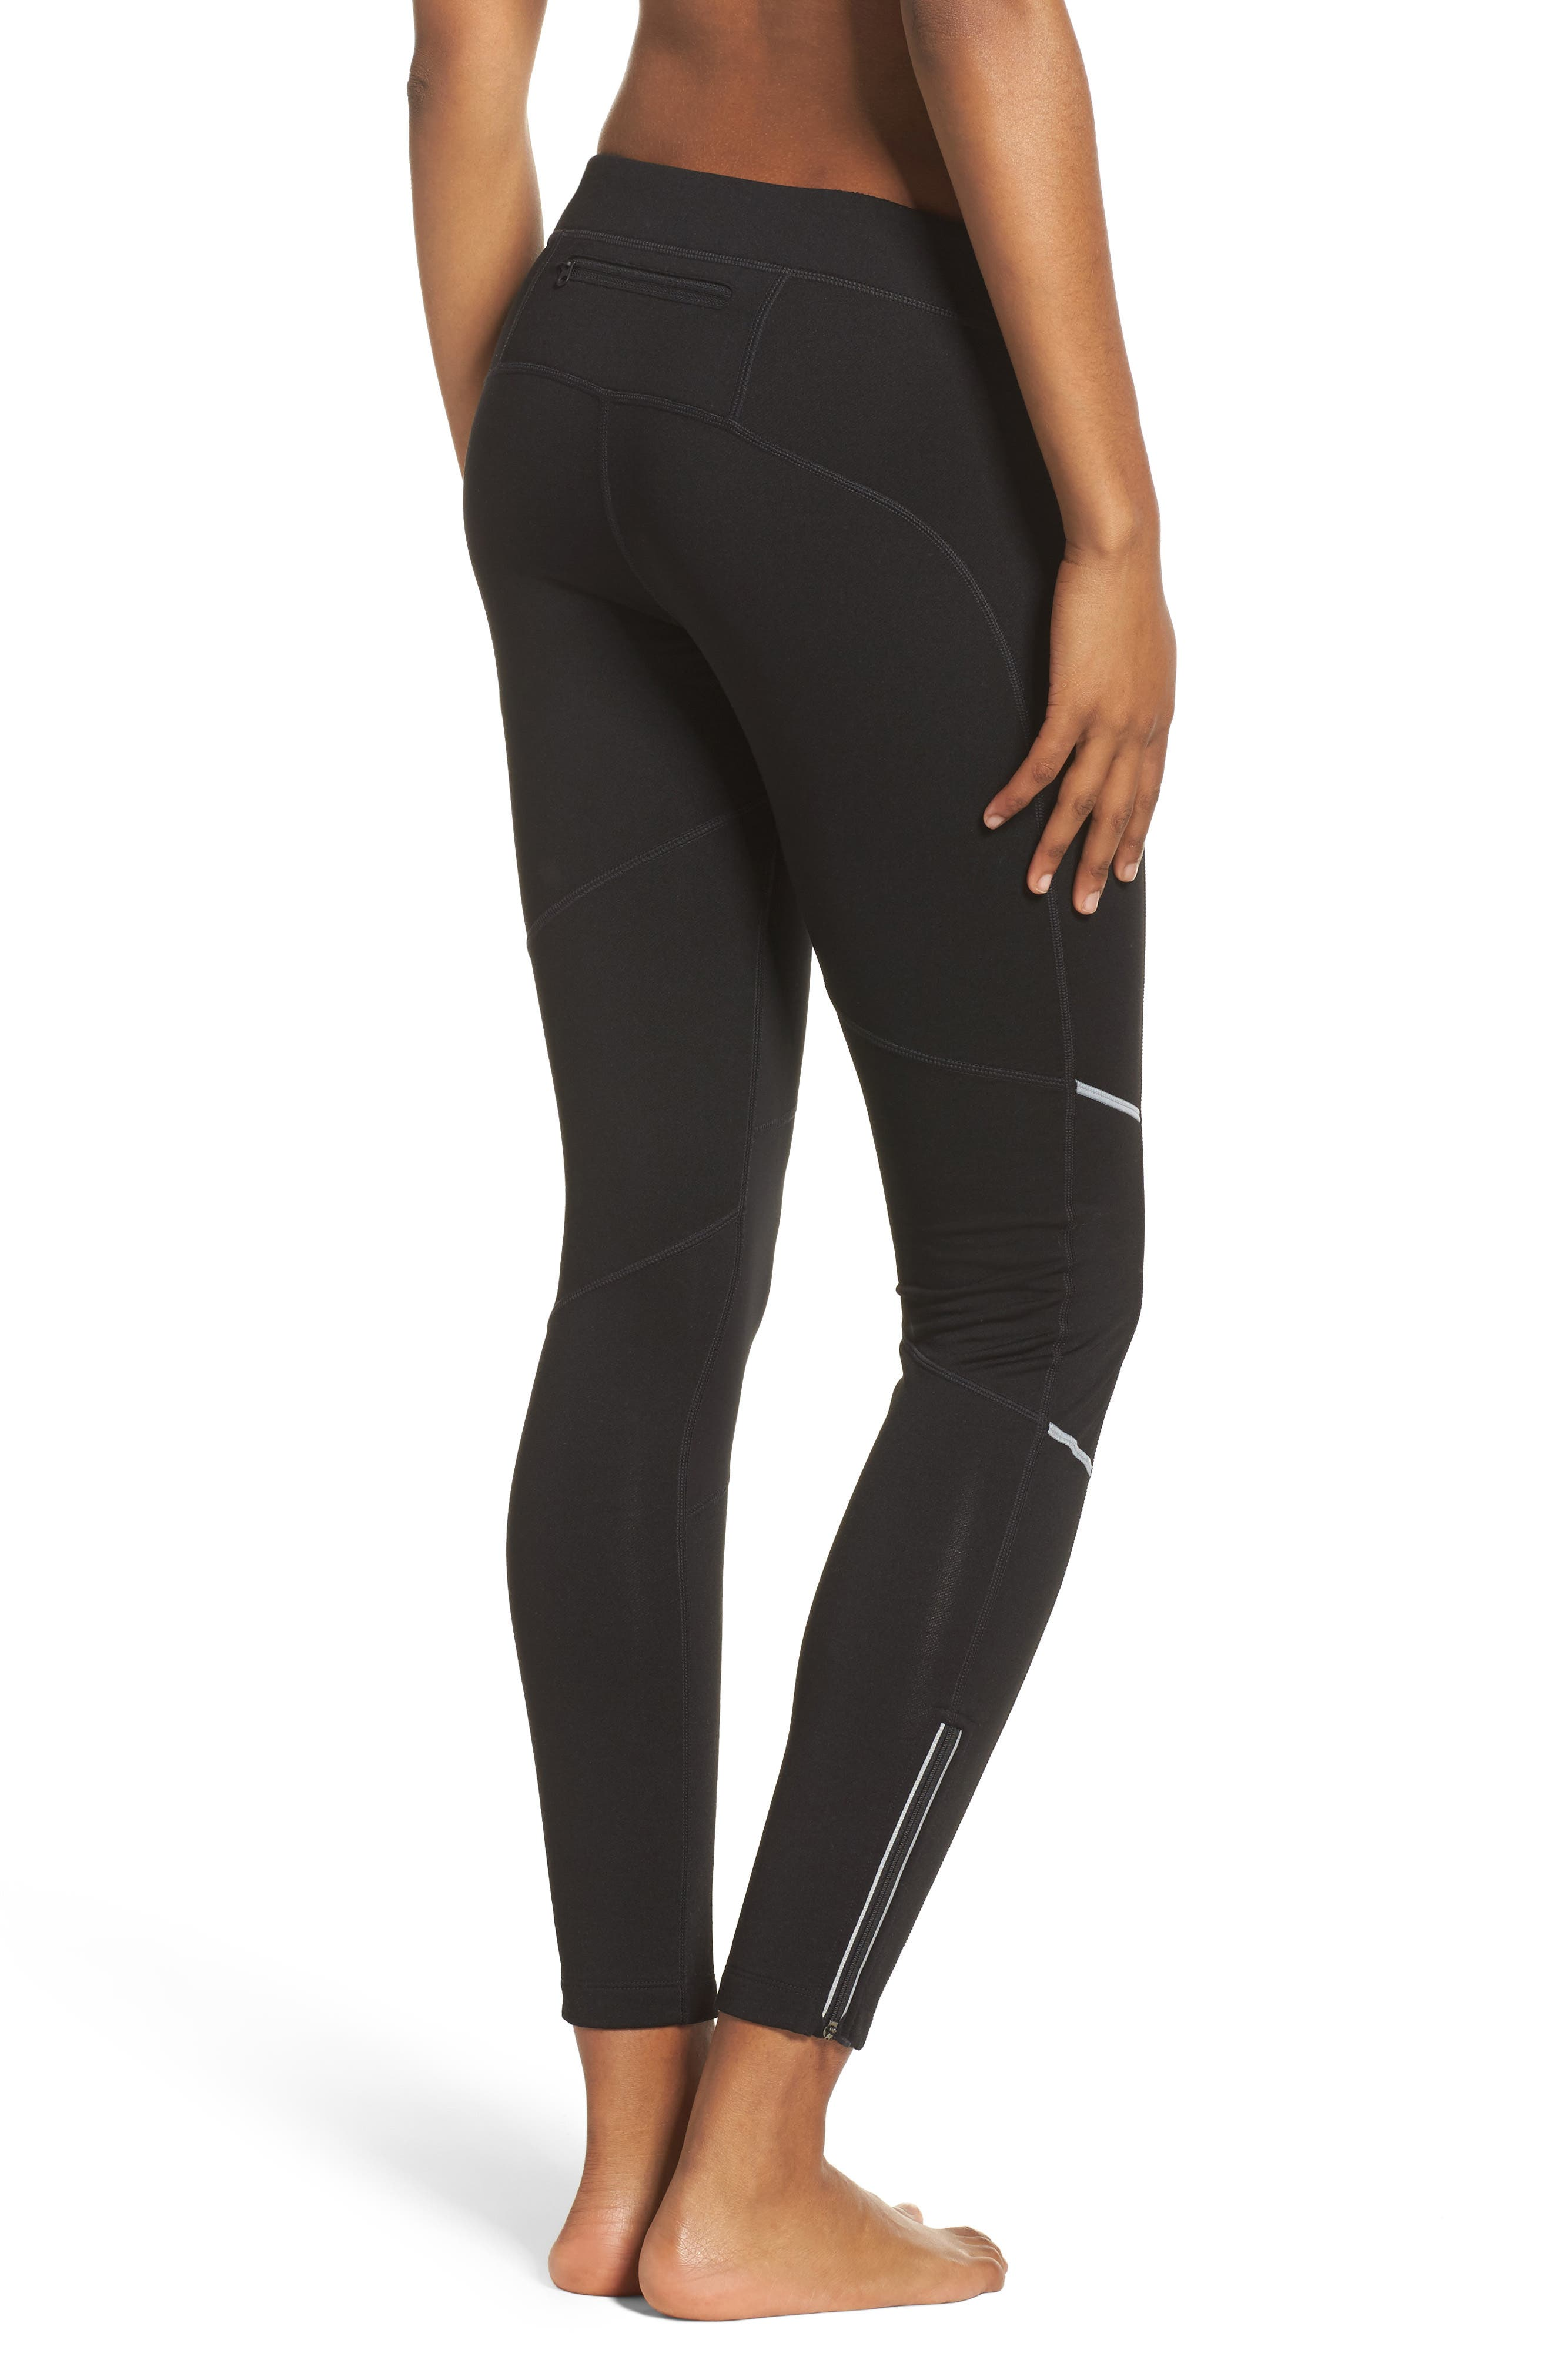 PhD Wind Tights,                             Alternate thumbnail 2, color,                             001